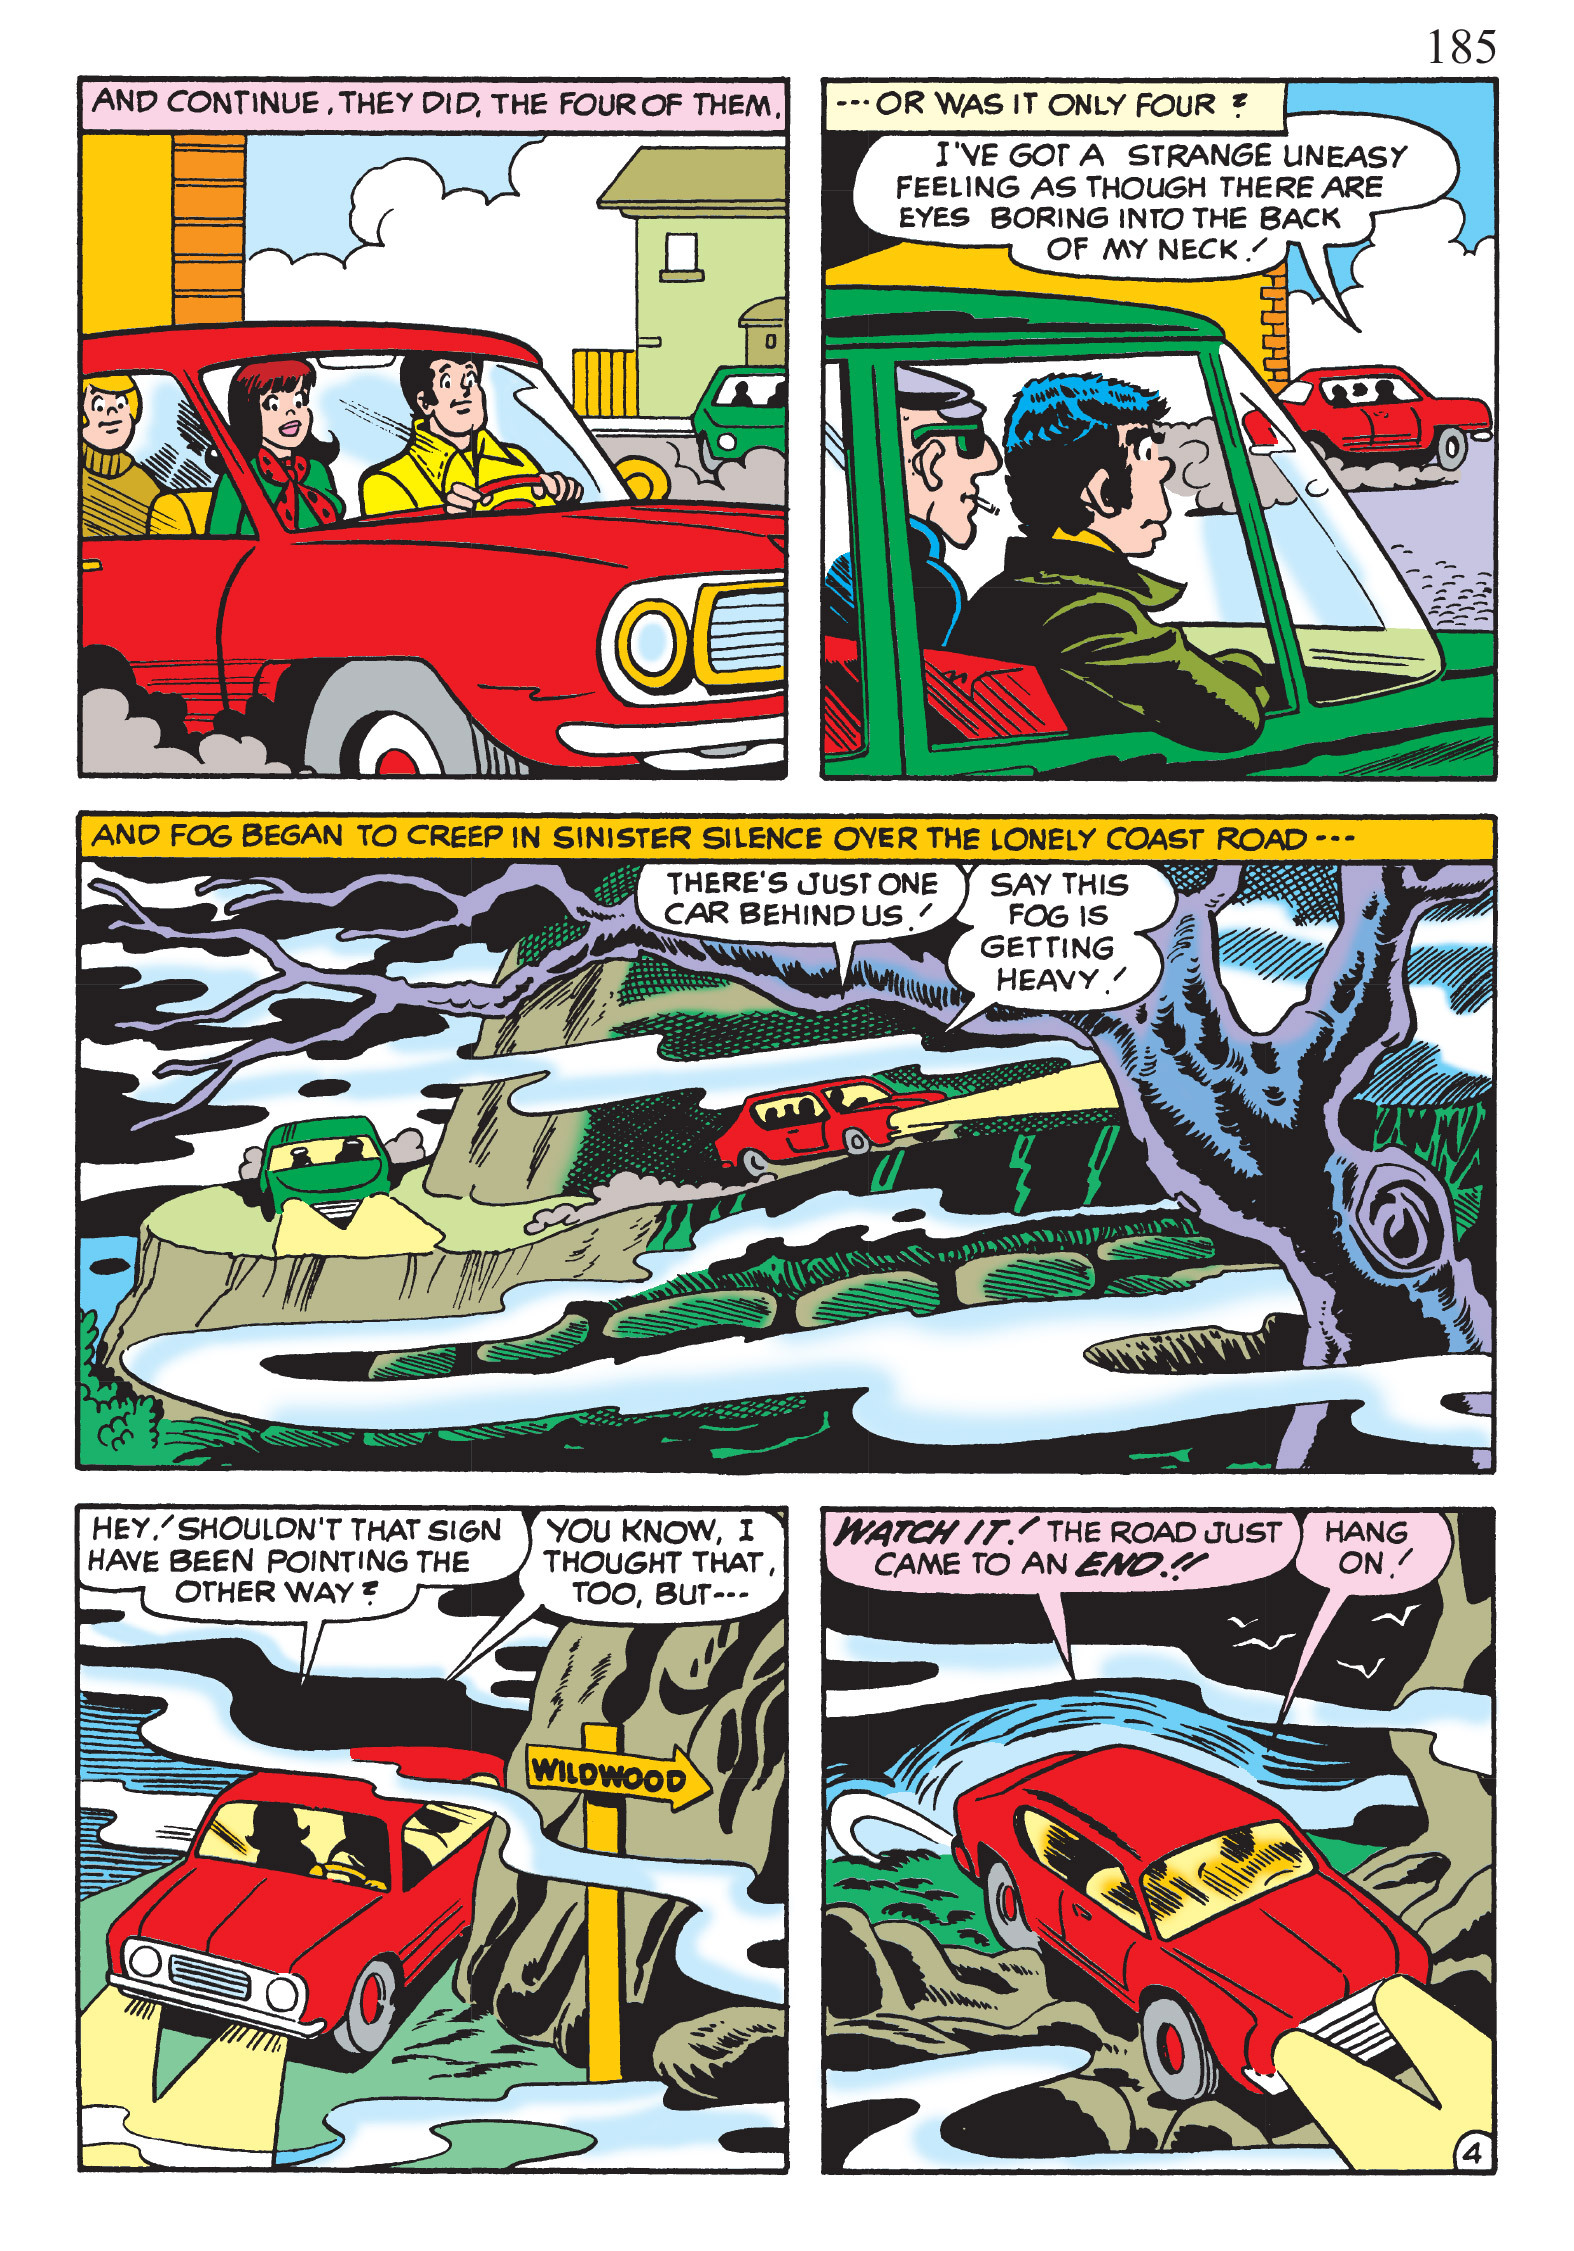 Read online The Best of Archie Comics comic -  Issue # TPB 2 (Part 1) - 187